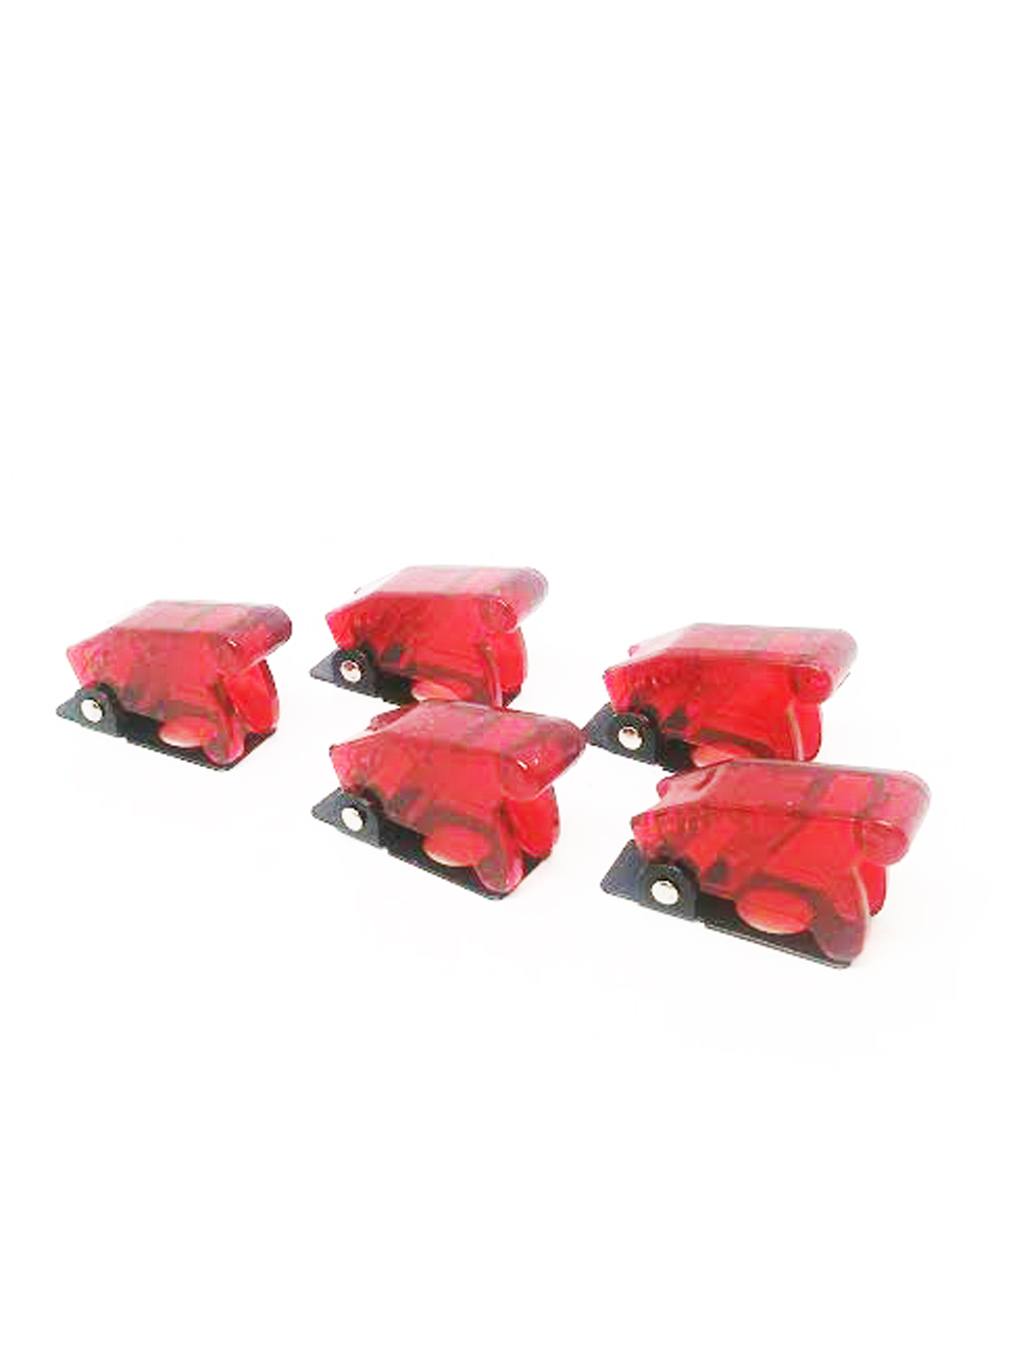 5pcs Red Safety Switch Flip Cap Cover RV Auto Boat Toggle Switch